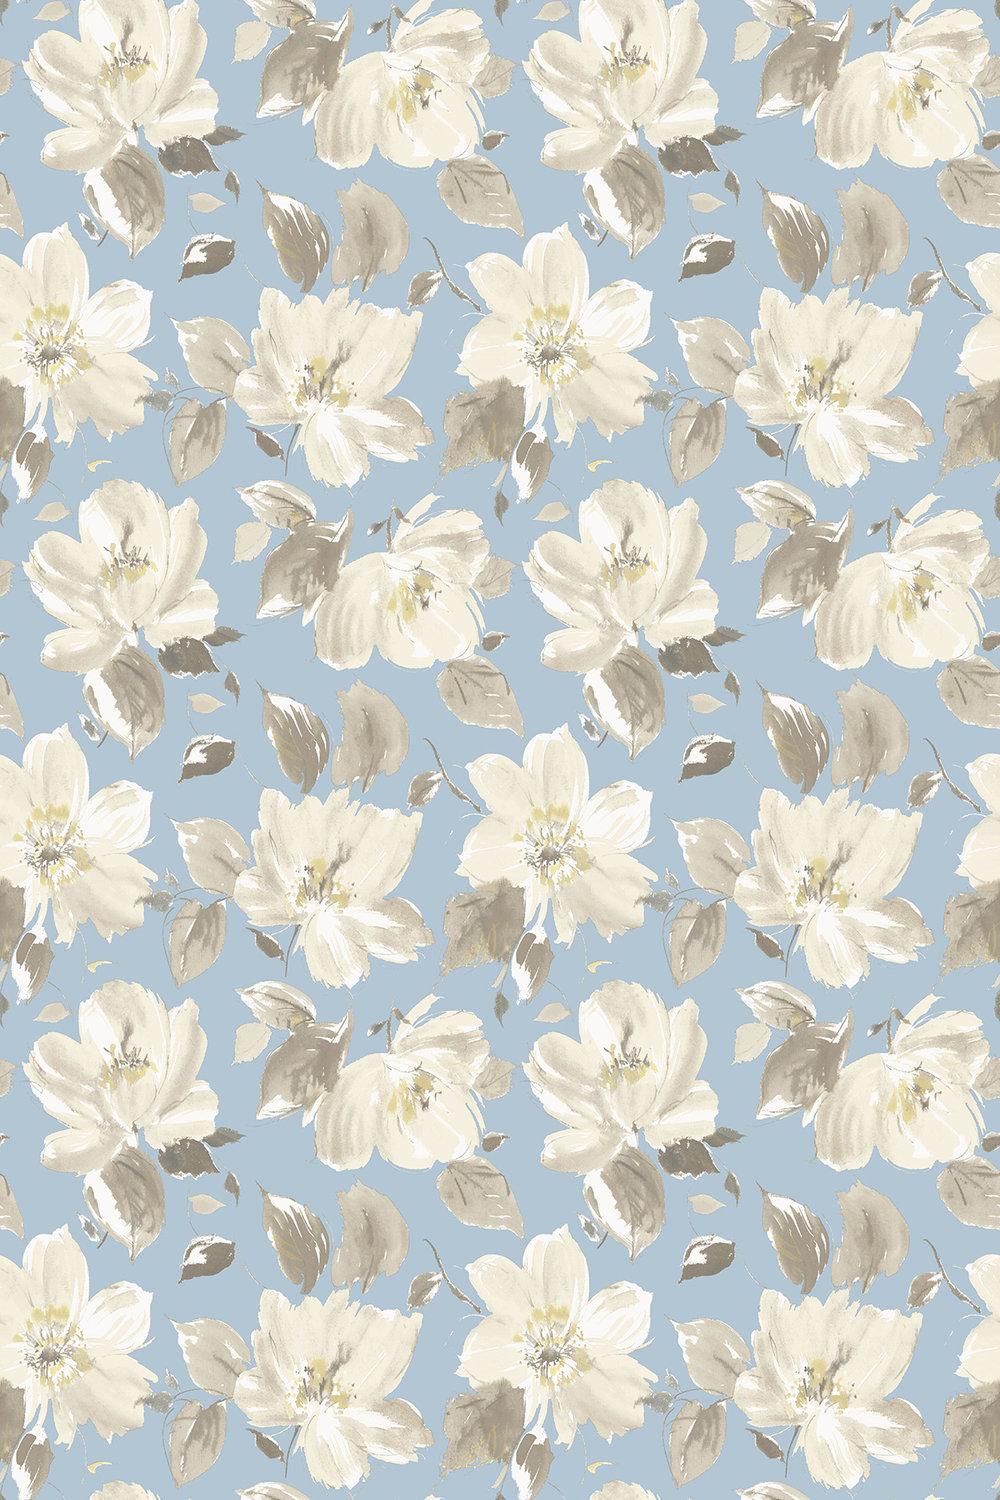 Blendworth Lillie Blue Fabric - Product code: LILLIE 4